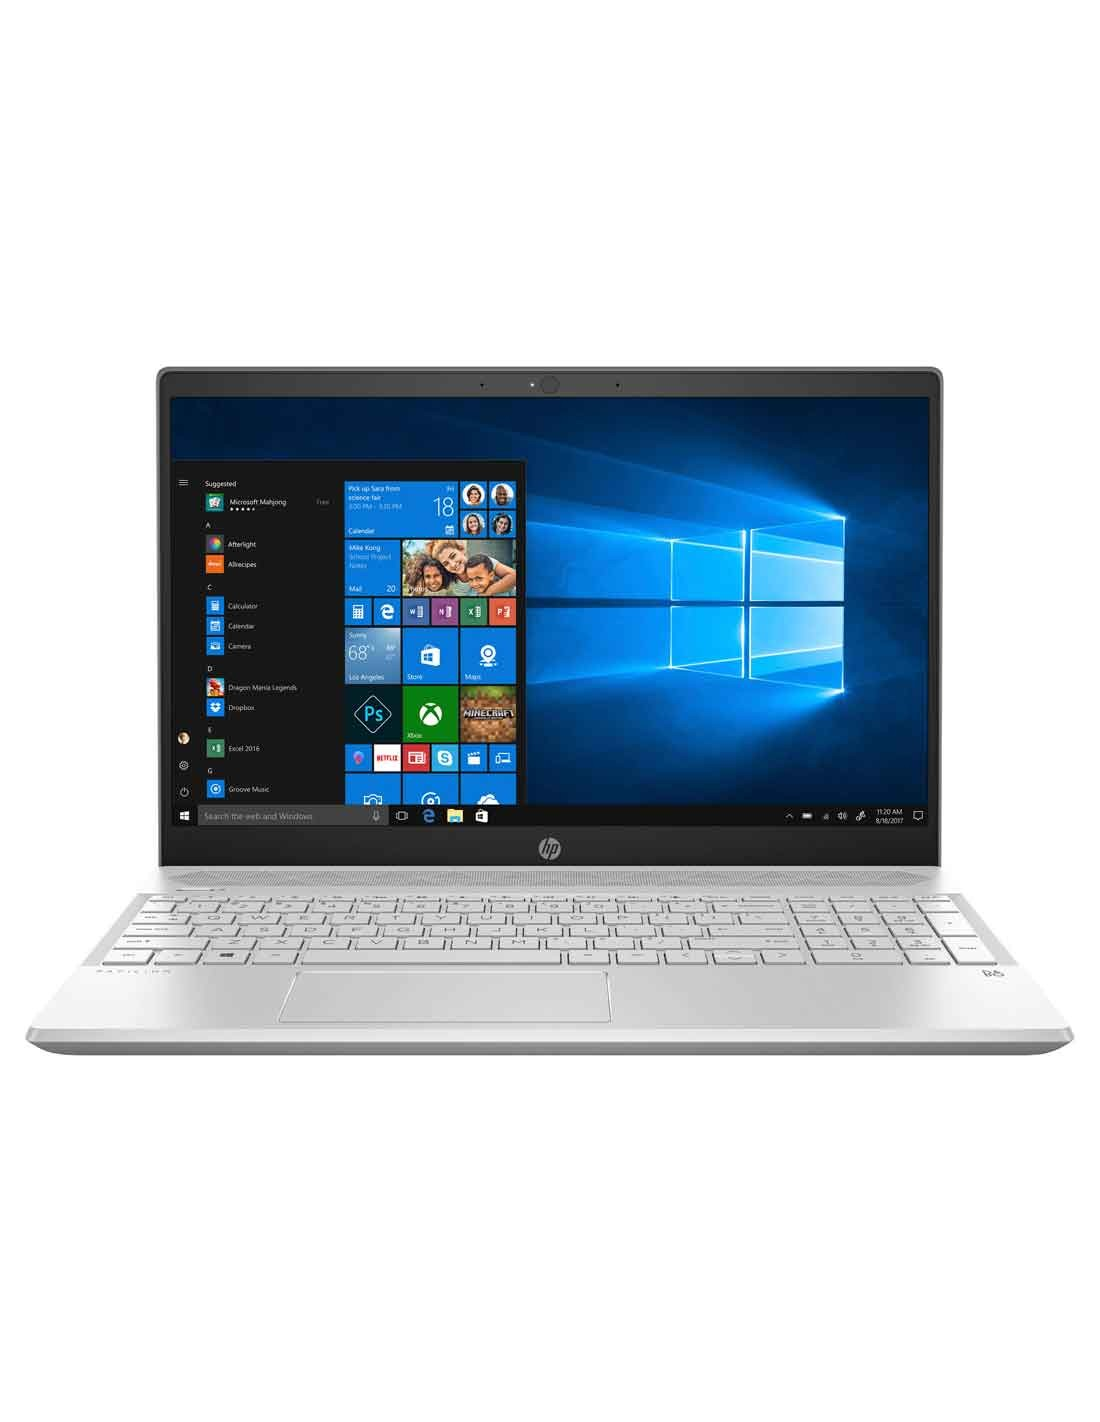 HP Pavilion 15-ck003ne notebook with best deal options - a cheap price and free delivery in Dubai